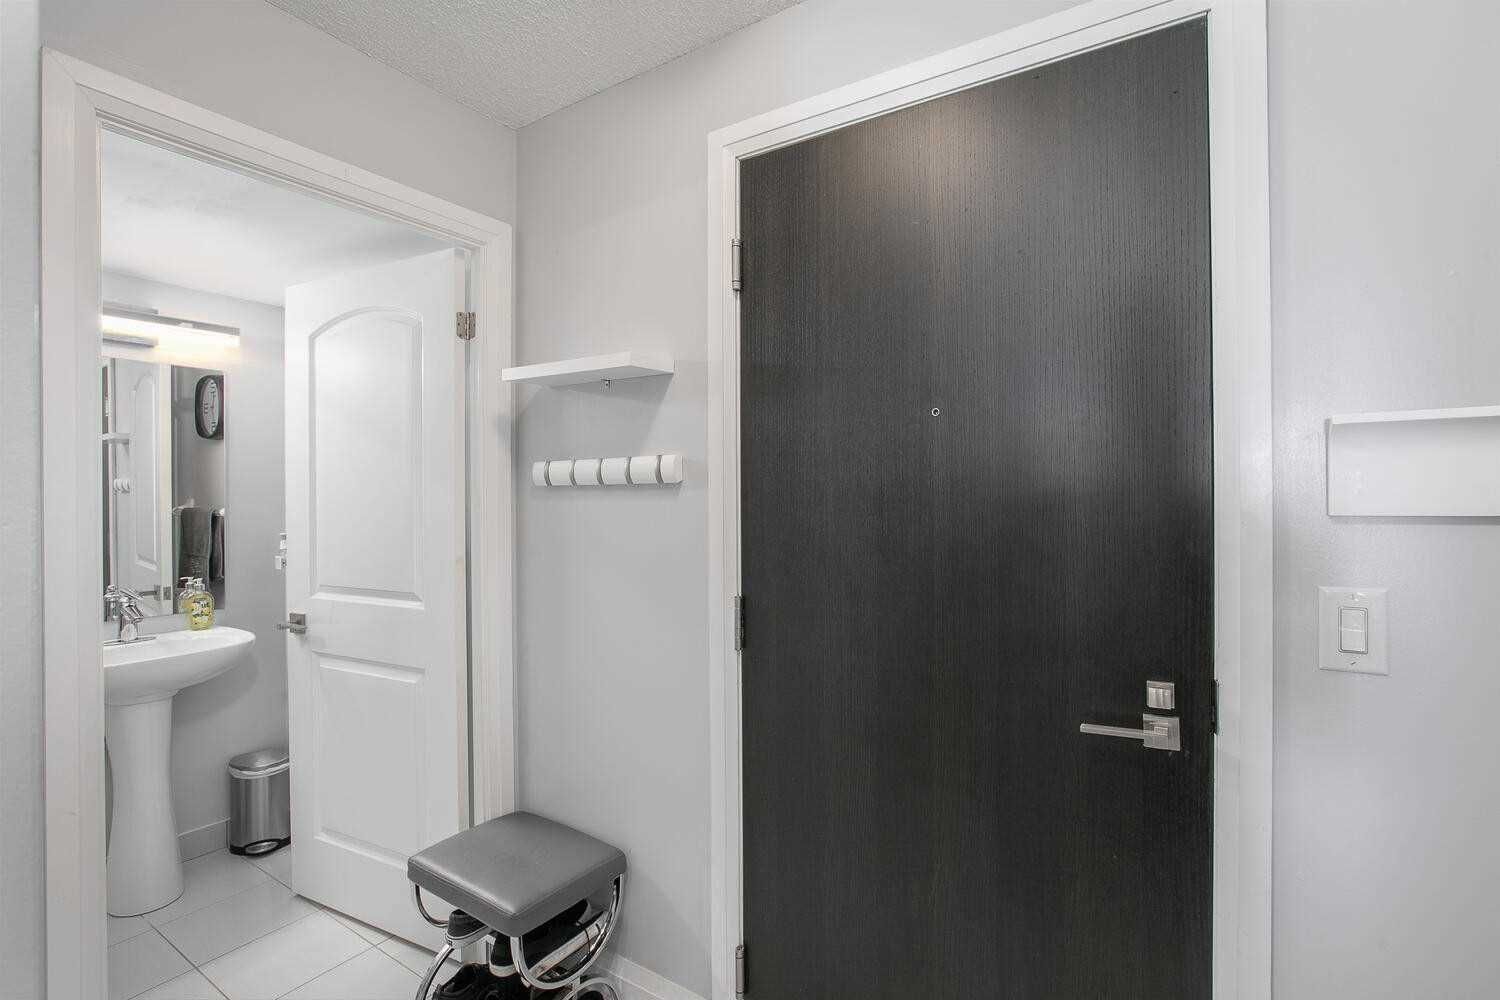 1070 Sheppard Ave W, unit #208 for sale in York University Heights - image #2